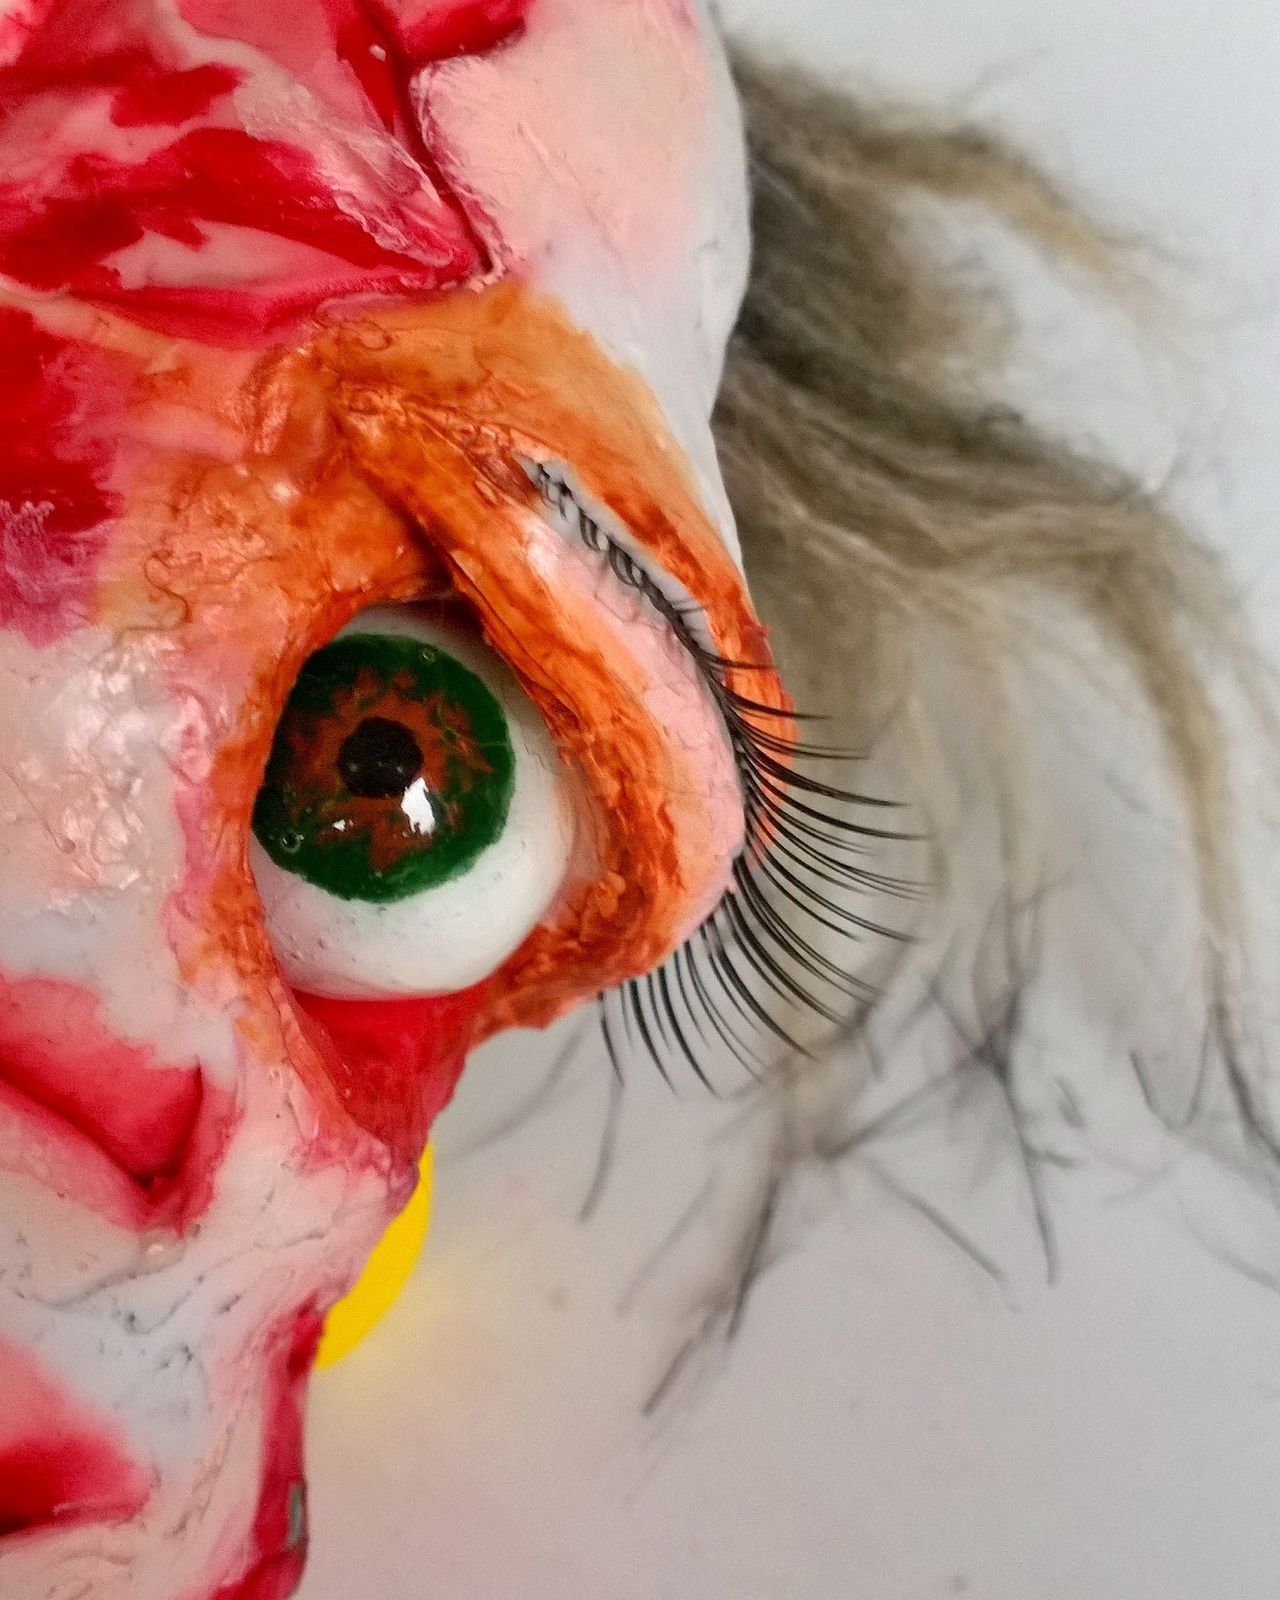 Art Sculpture Mixed Media Mixedmedia Paintings Sculptures Scary Dolls Dolls Head Extreme Close-up